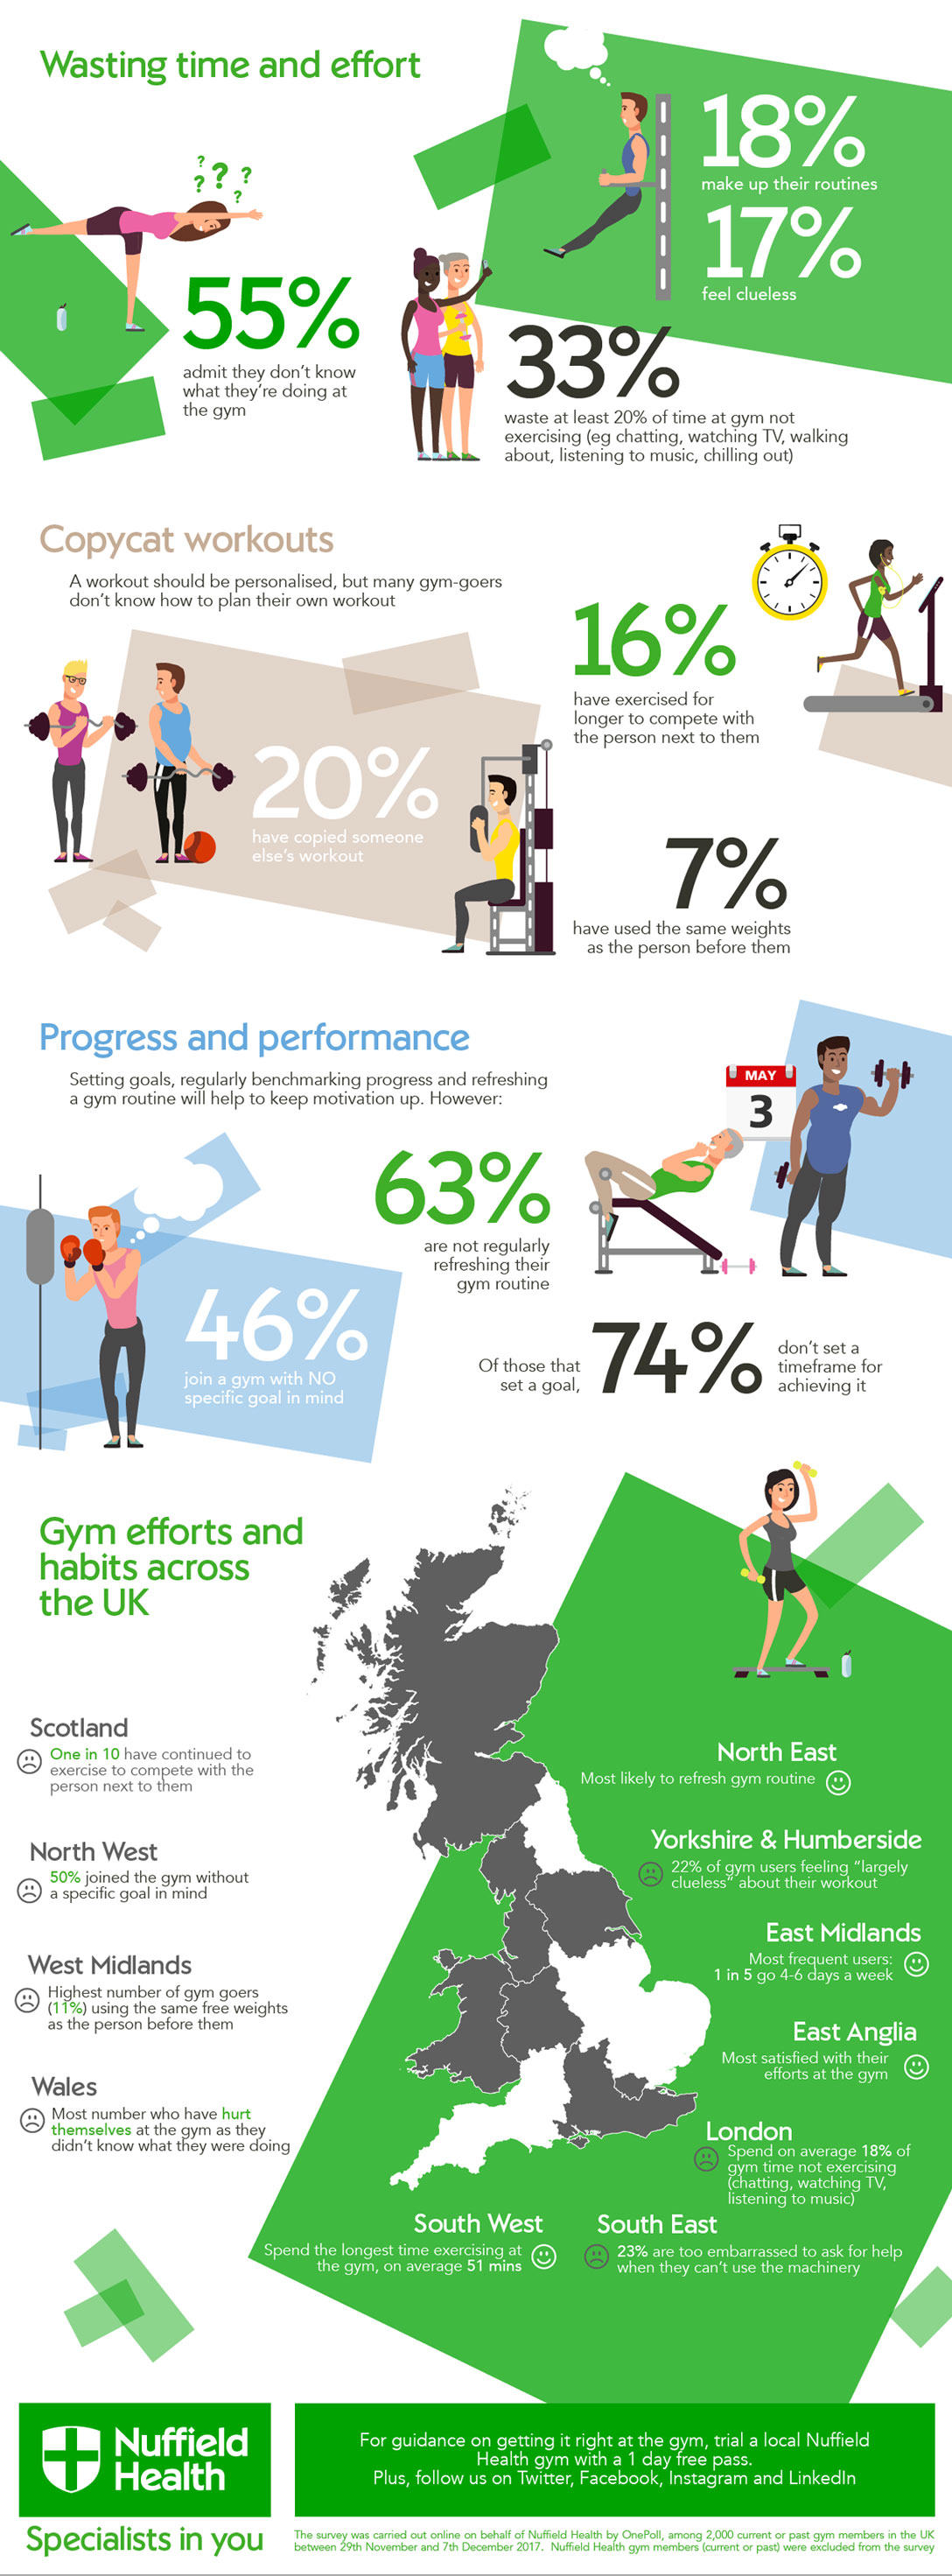 bad gym habits infographic